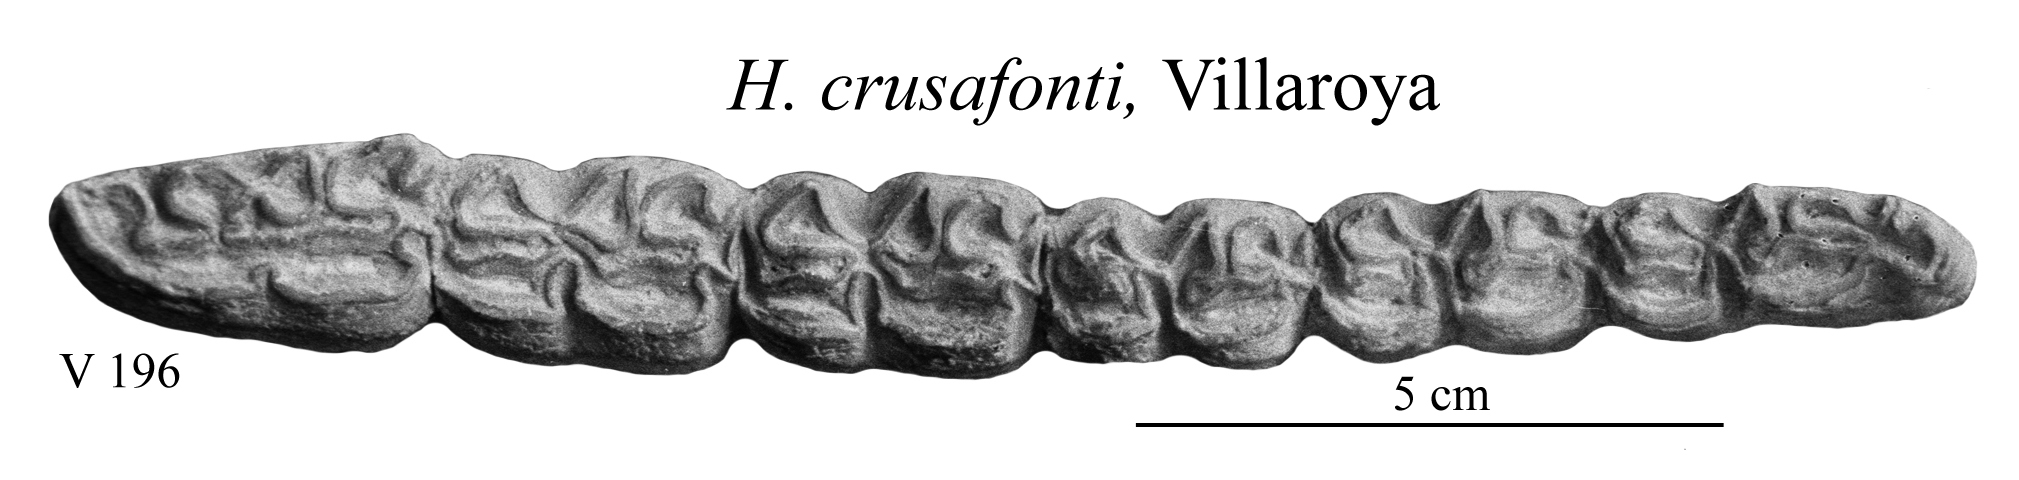 H. crusafonti, Lower cheek teeth